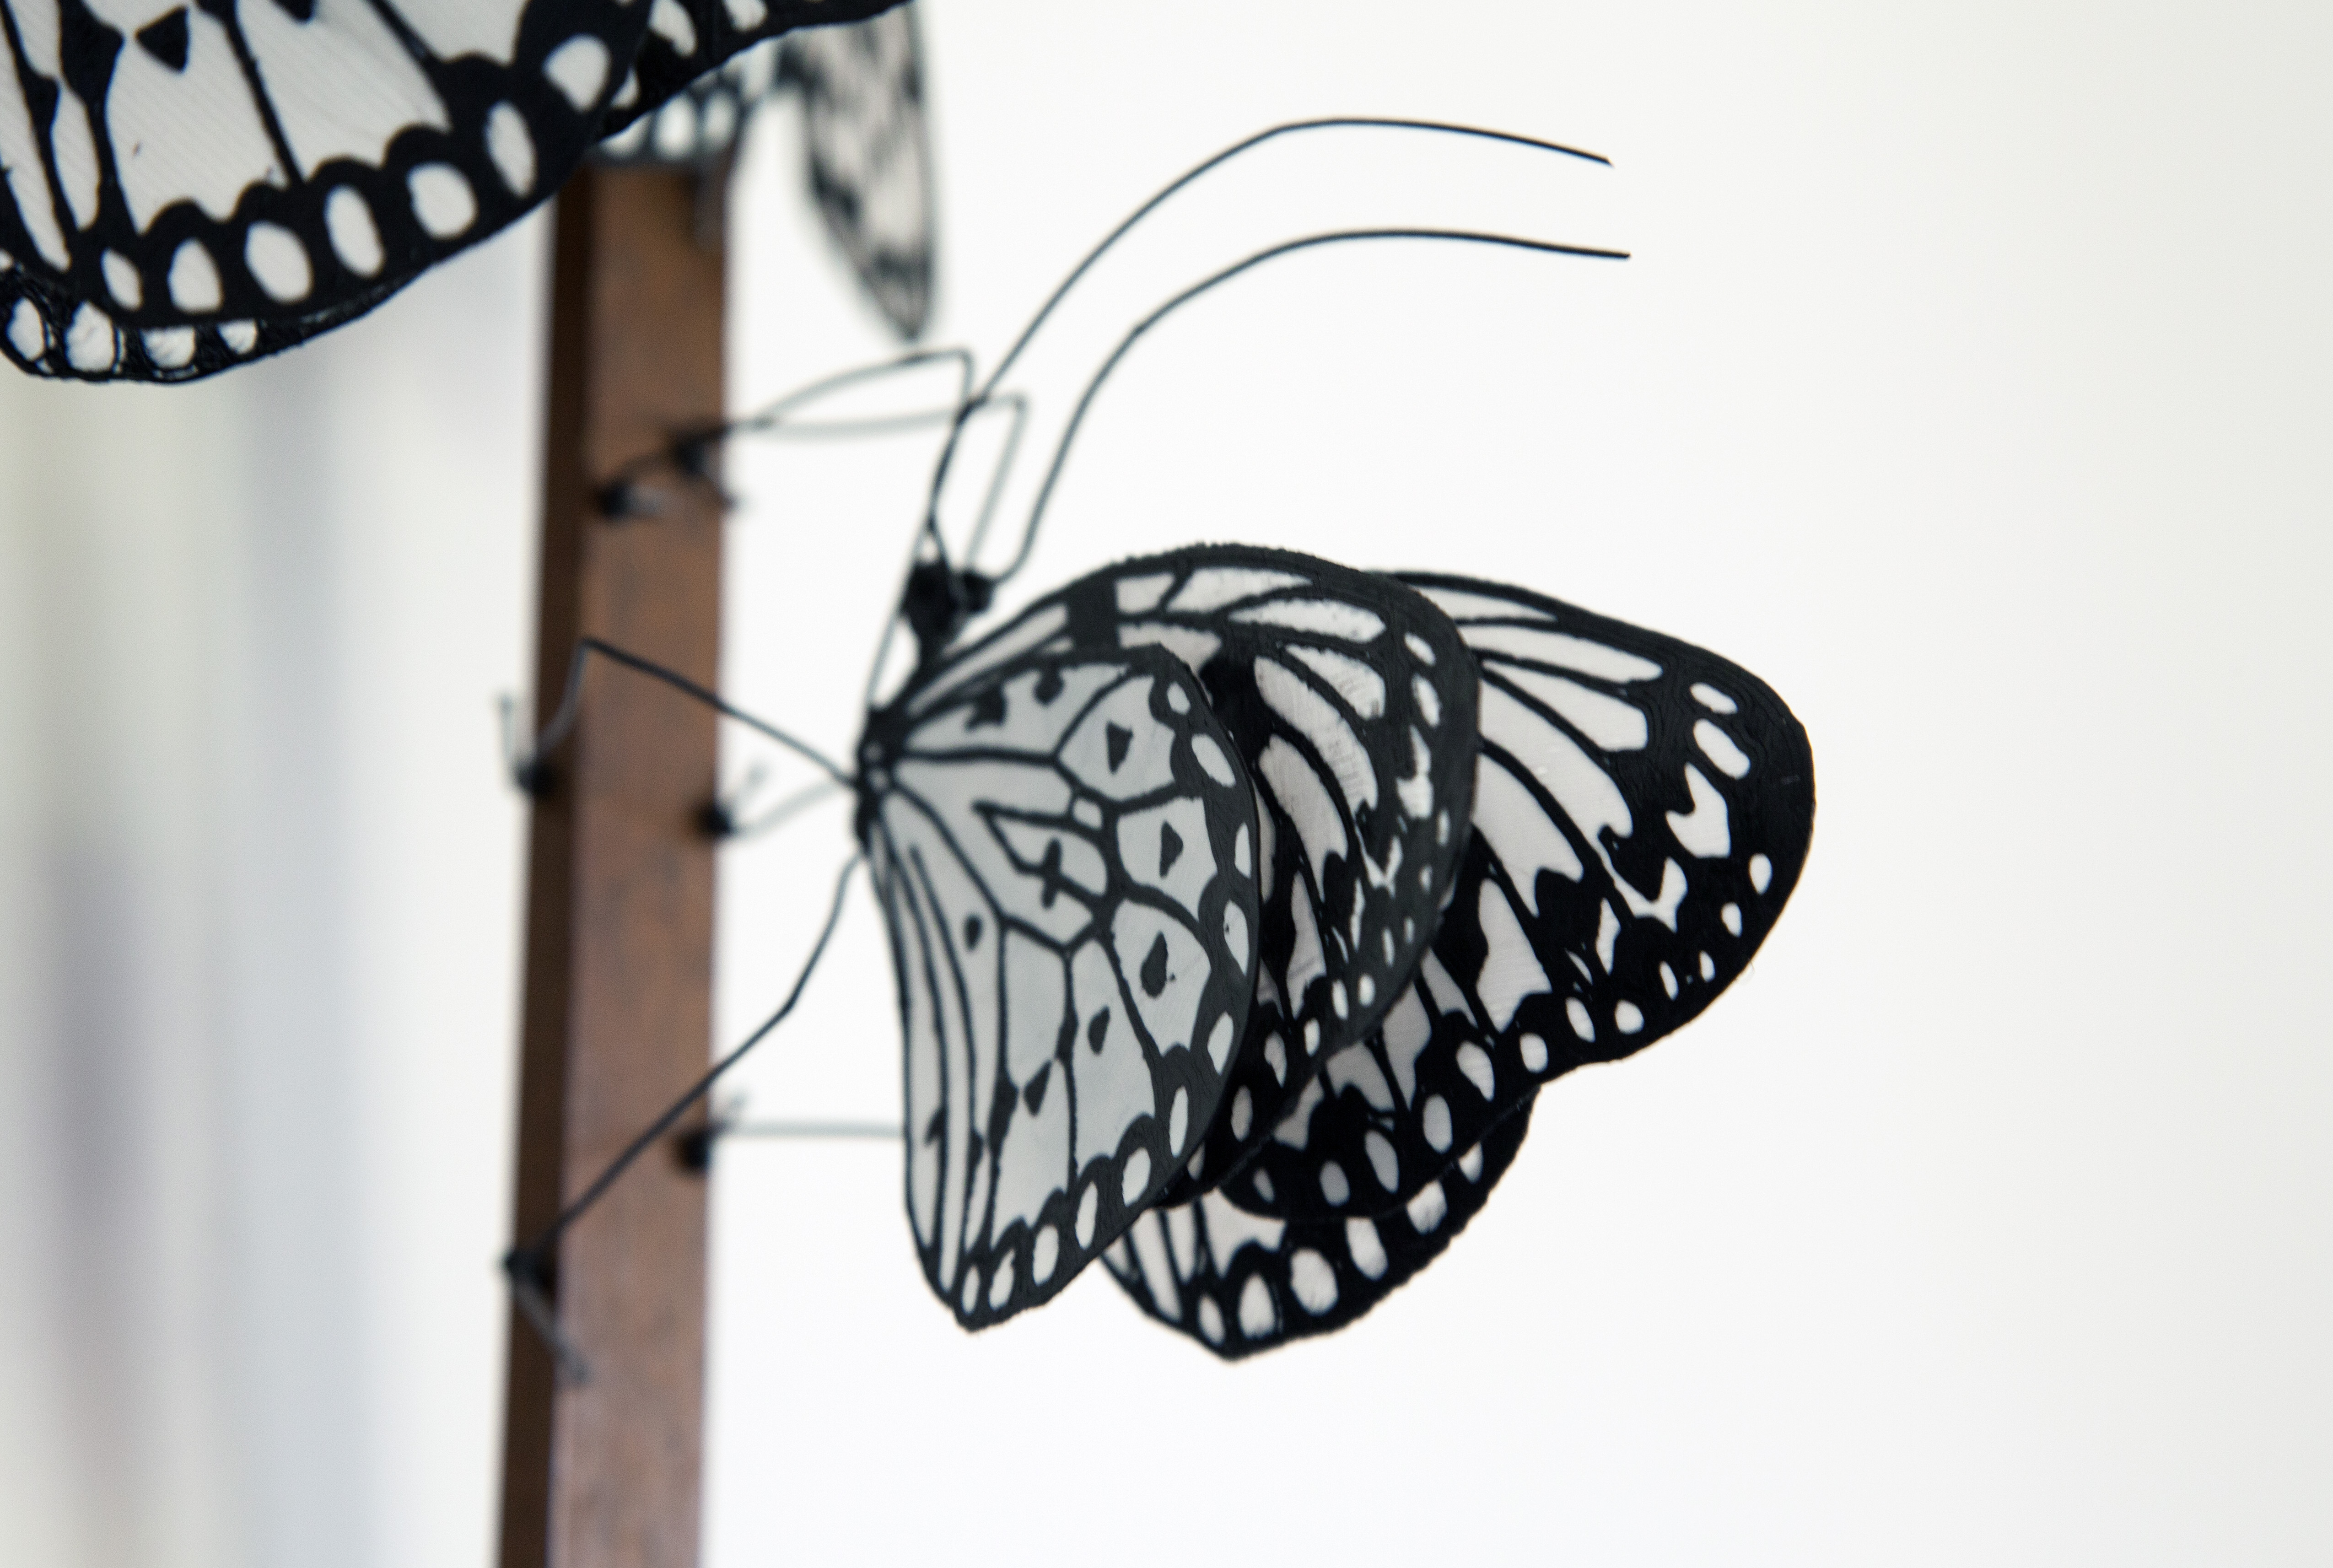 3D Printed Butterfly